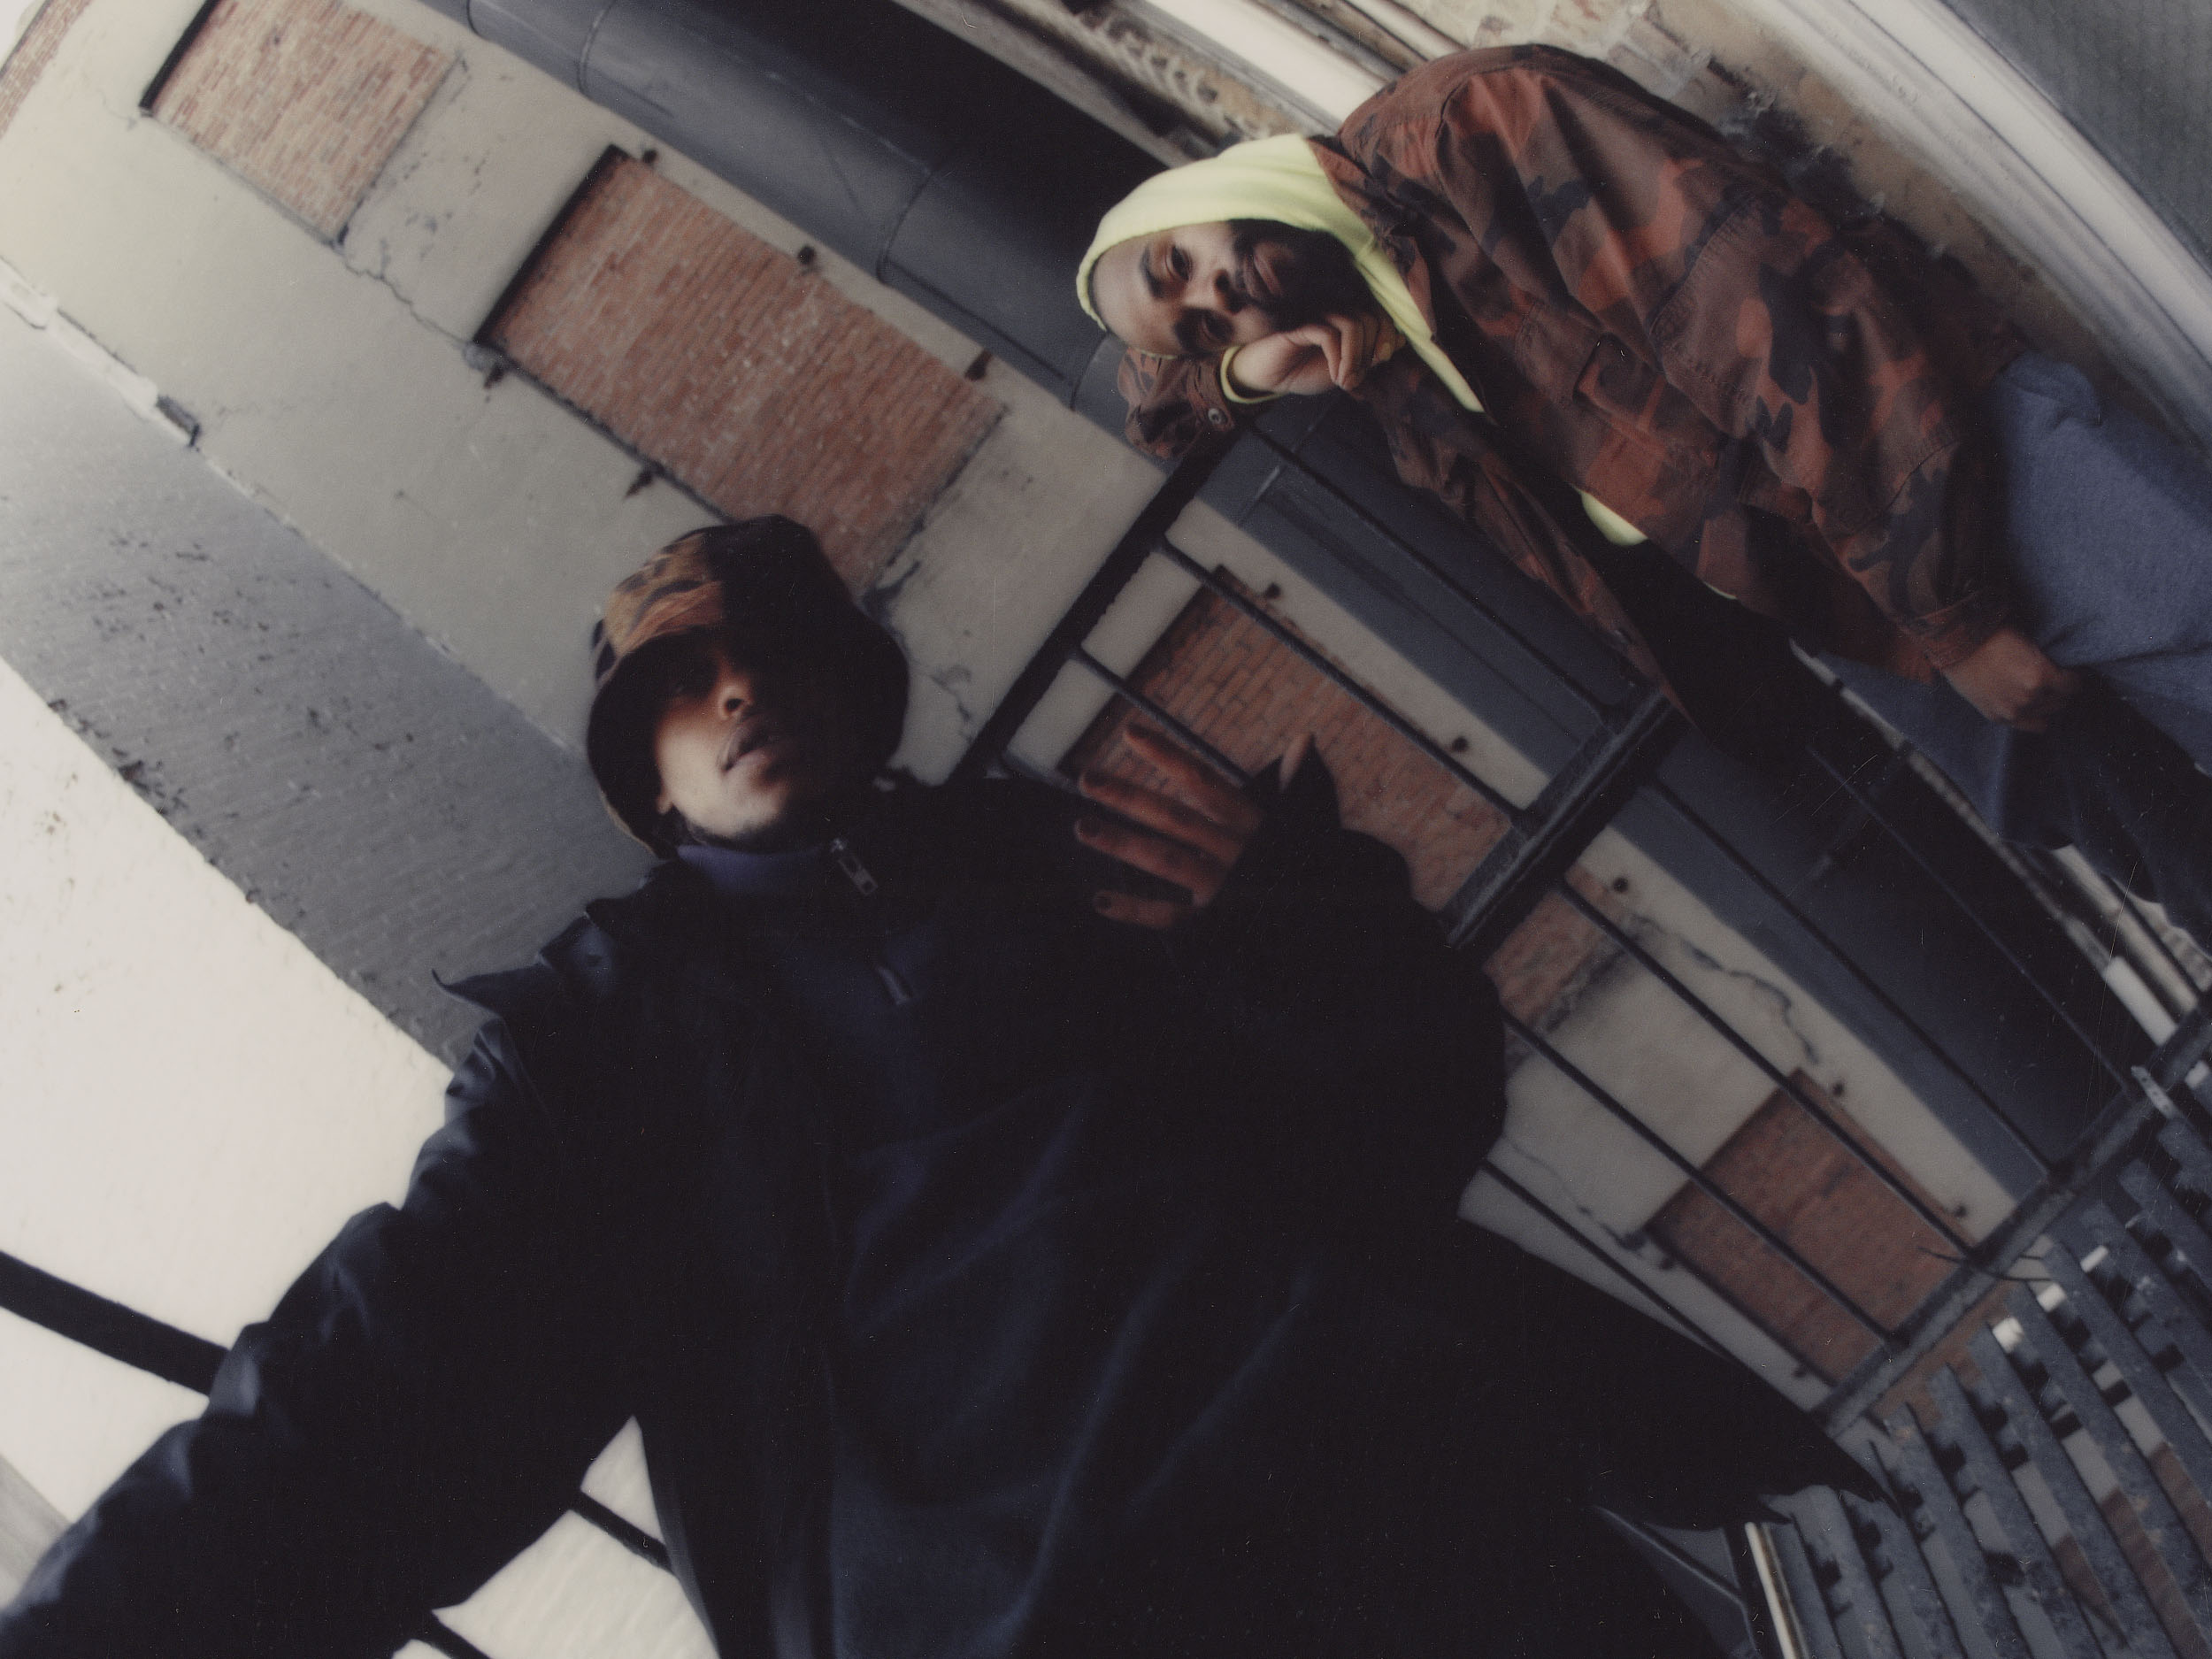 Pink Siifu and Fly Anakin make jazz-inspired hip hop from the soul